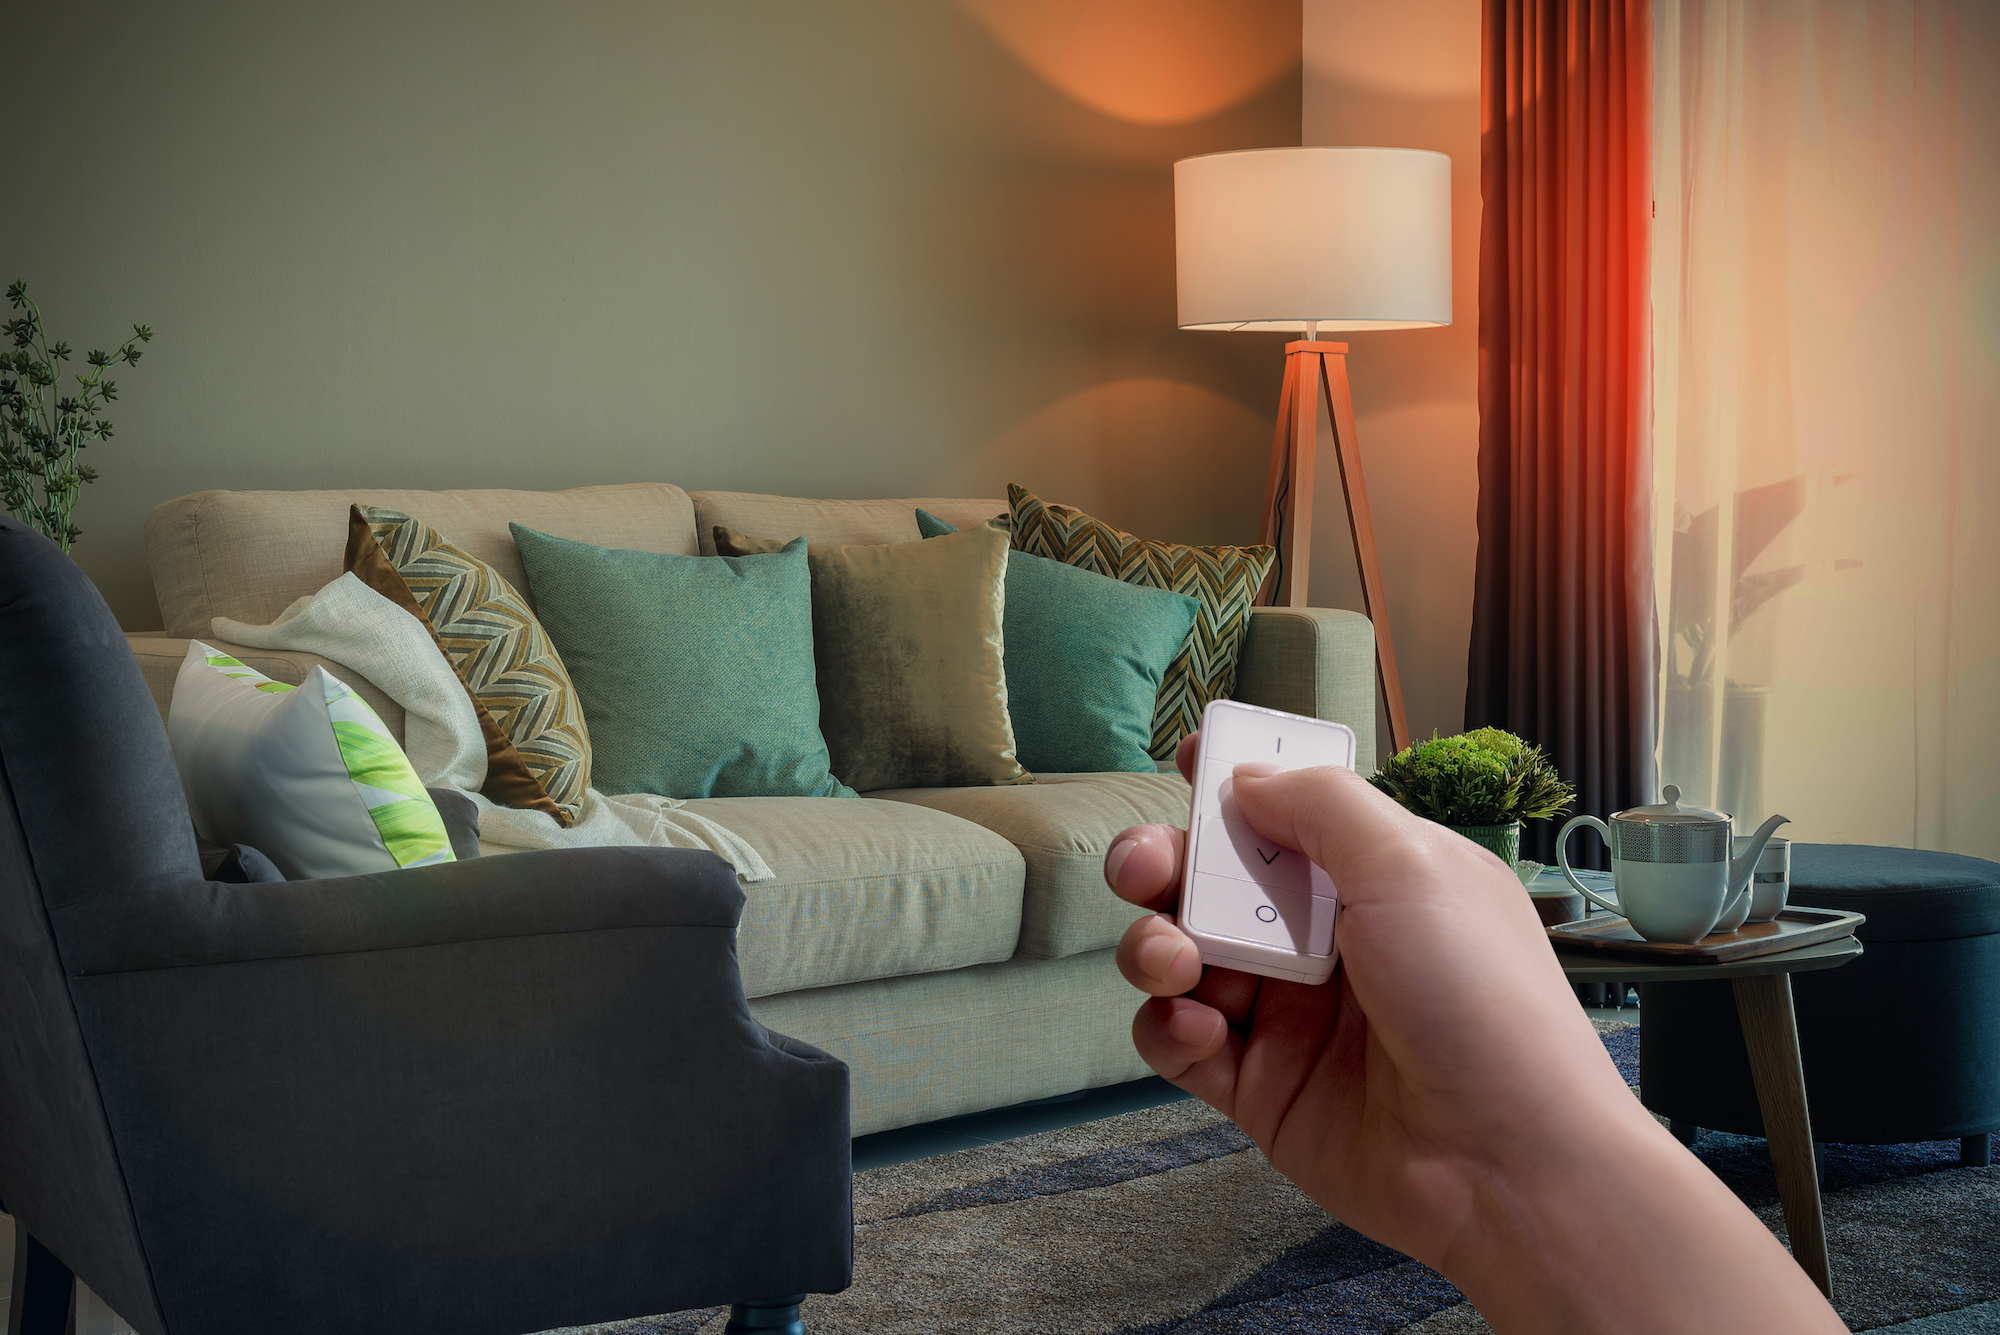 Control your lighting effortlessly from the kitchen to the comfort of your sofa with the AduroSmart wireless Dimming switch.